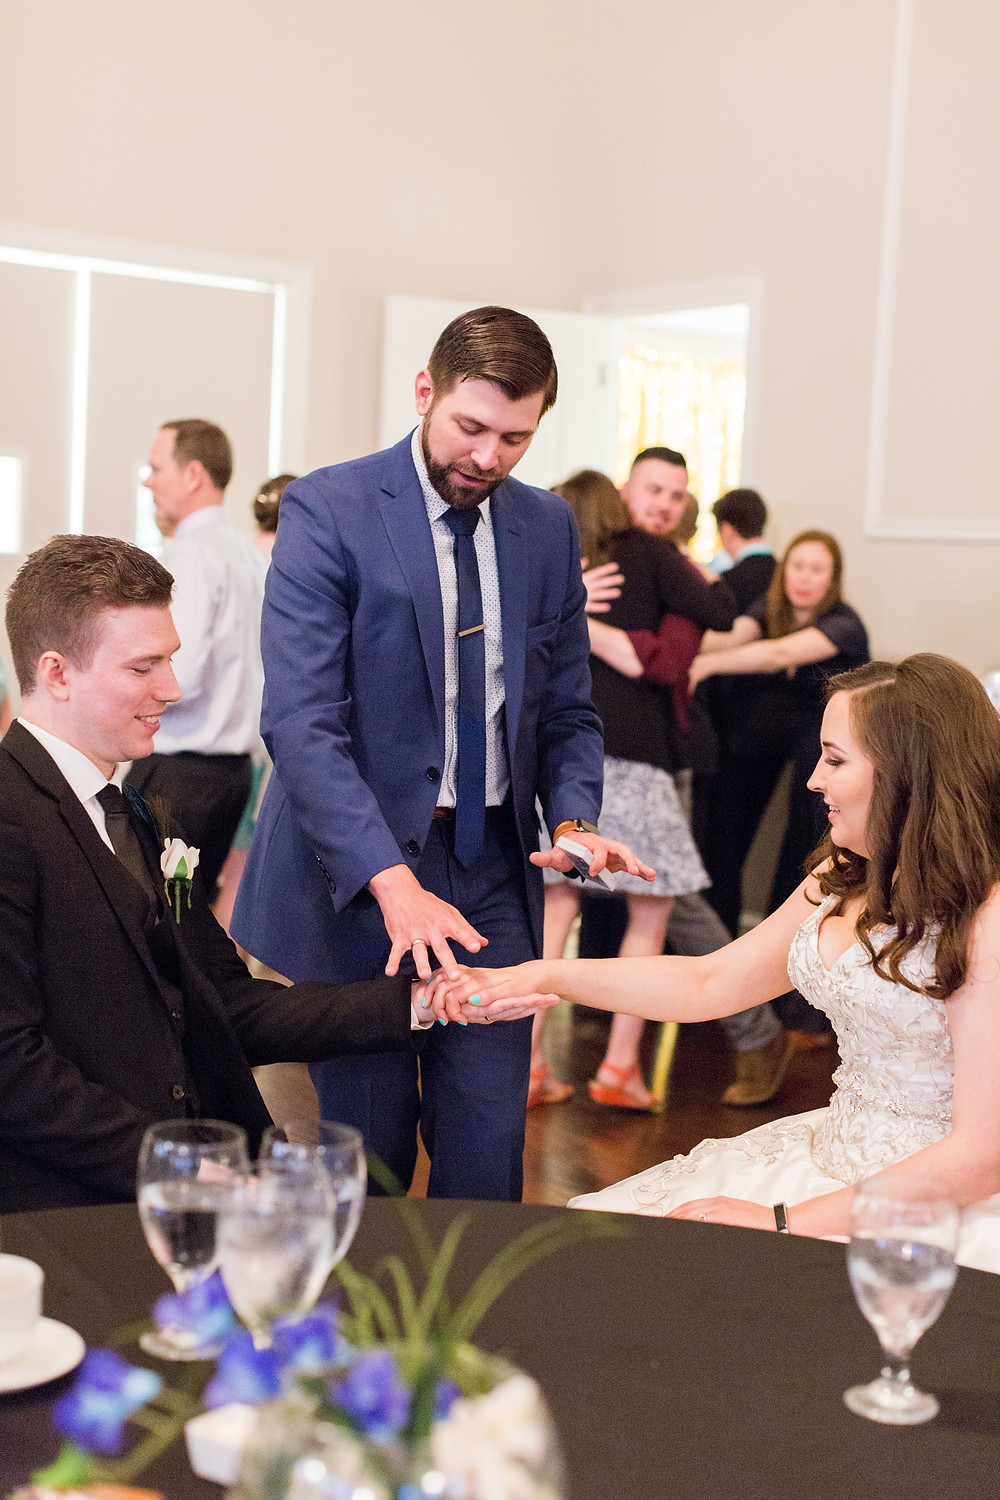 Dallas Magician Anthony Dempsey doing a card trick for a bride and groom.